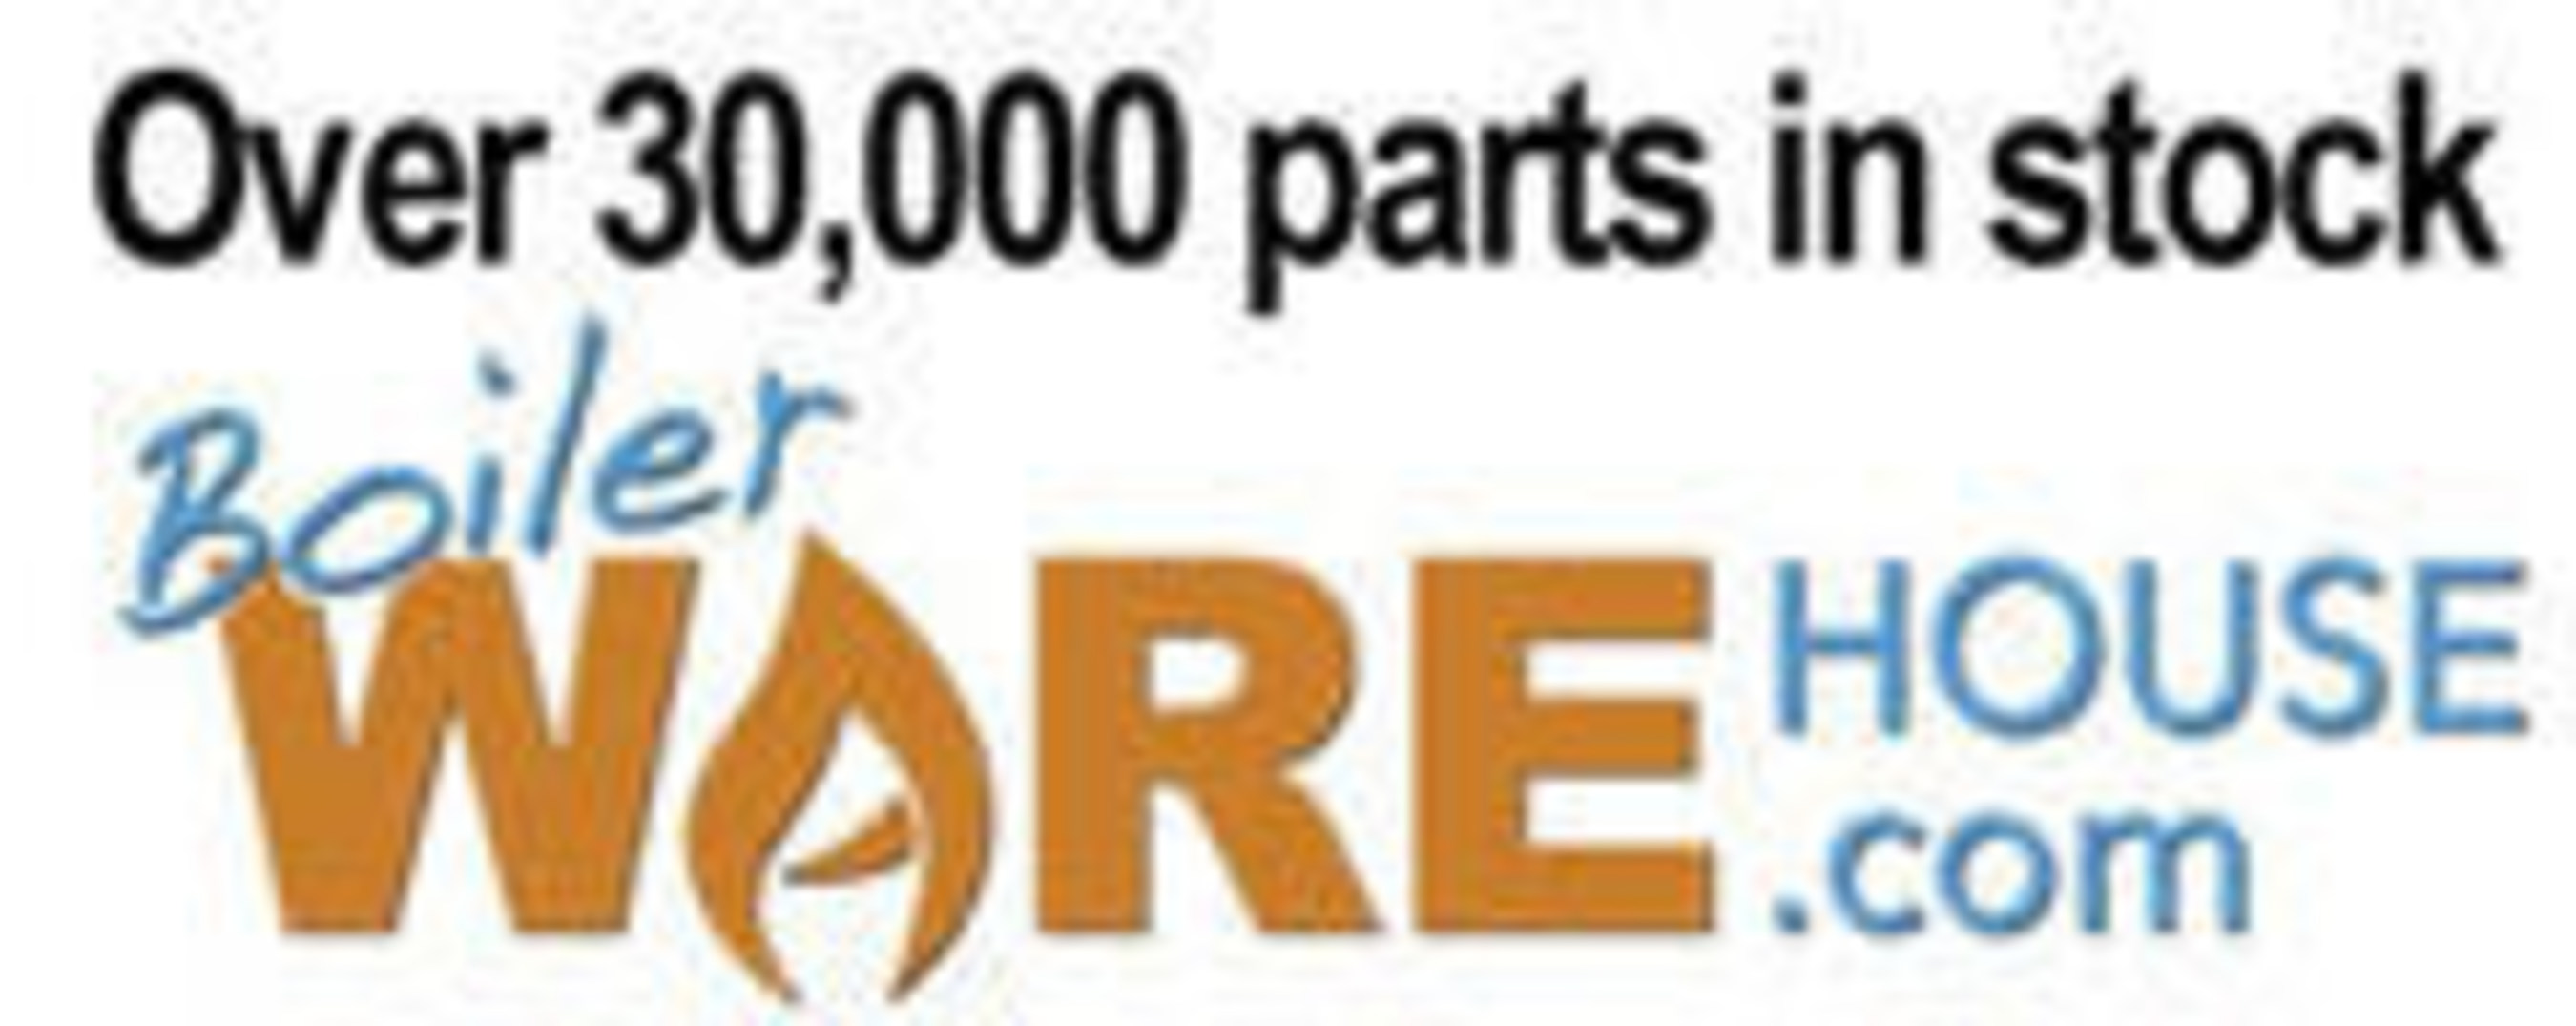 WARE launches its new online parts store, BoilerWAREhouse.com